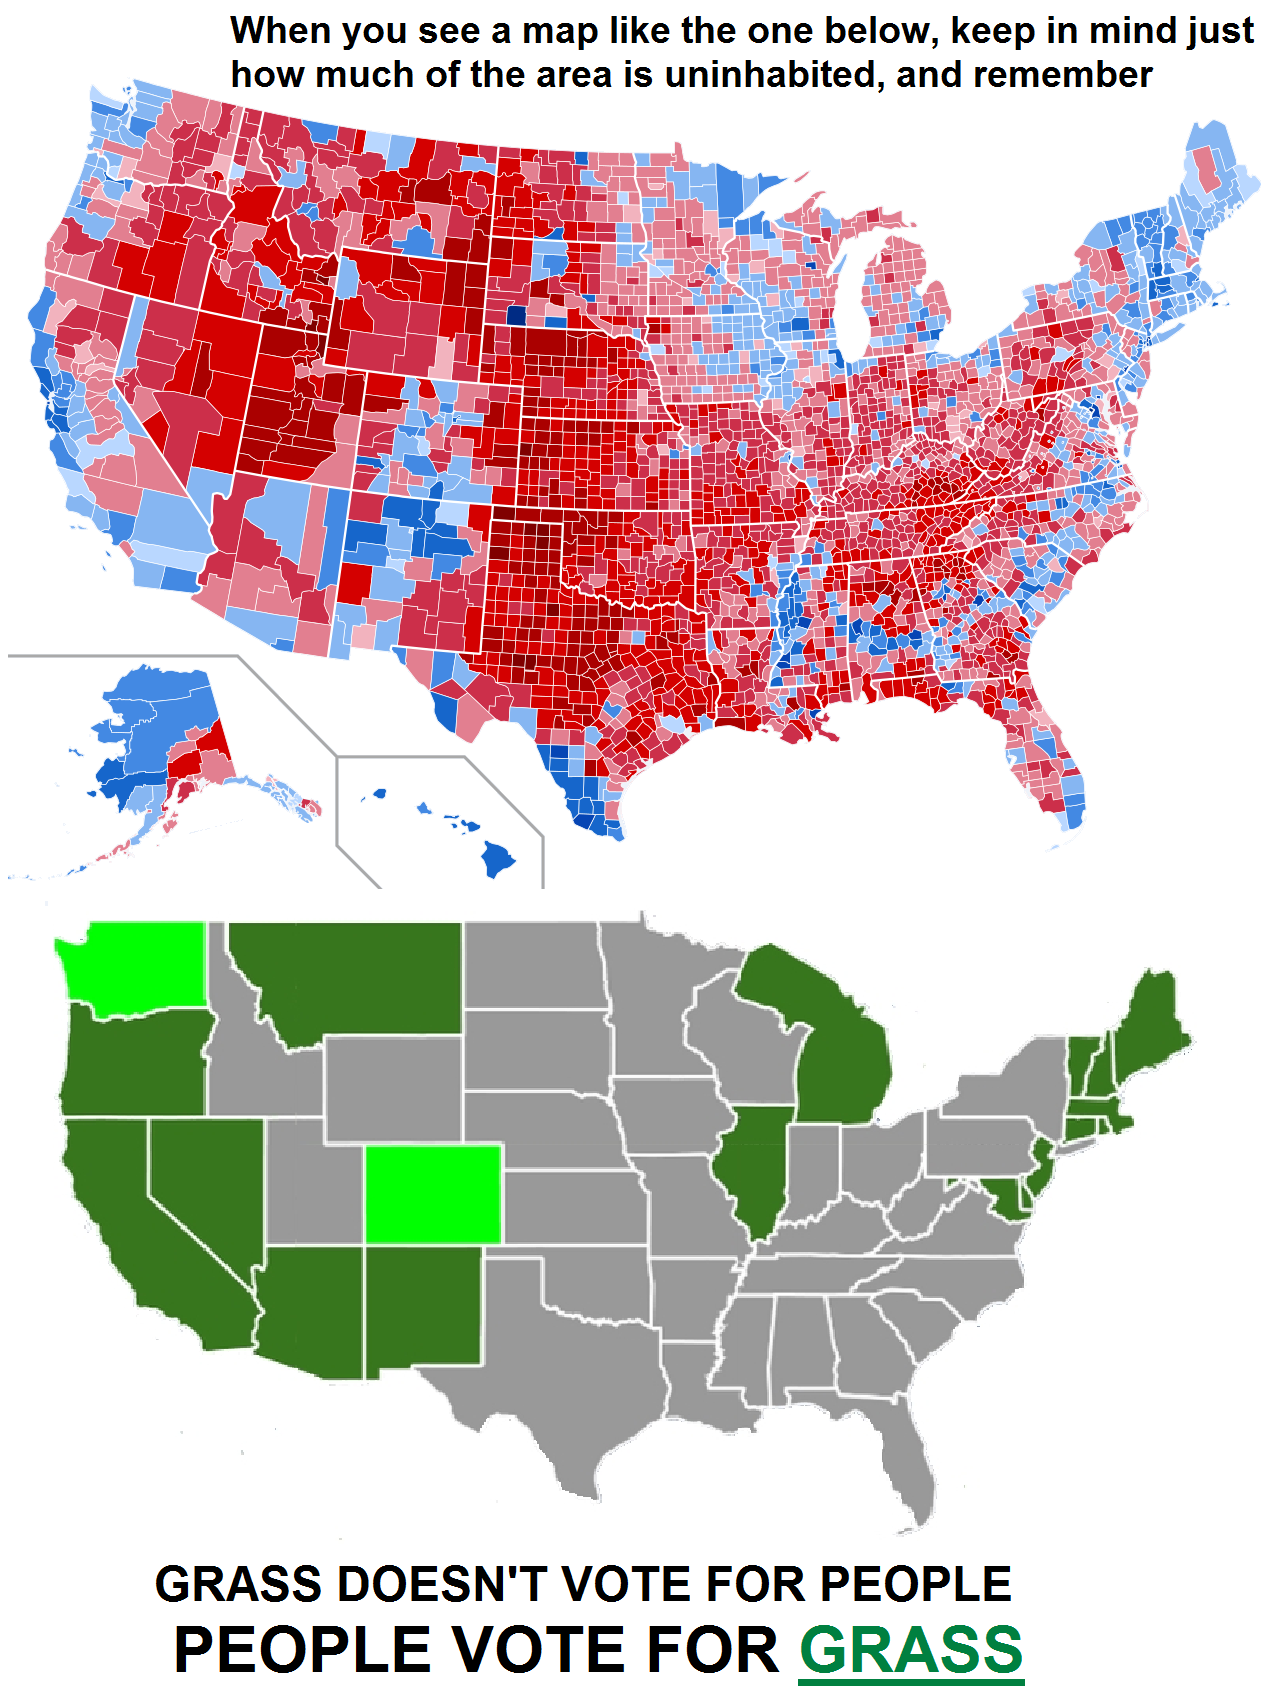 2016 united states presidential election the electoral map is for 2012 when obama won with 332 electoral votes